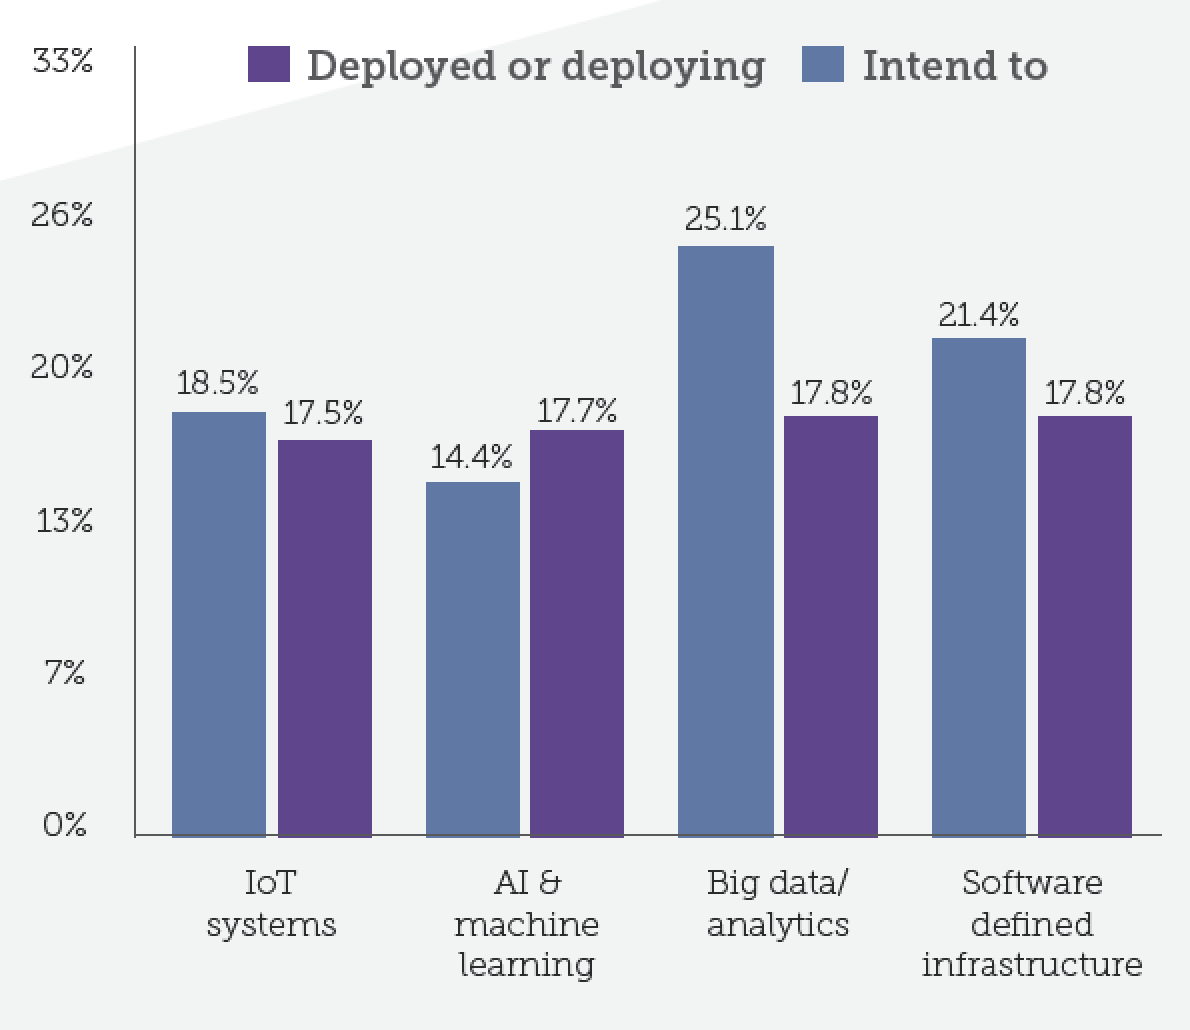 Figure 11: Deployment of technologies across the Asia Pacific data centers (January 2019). Source: DCD Research 2019